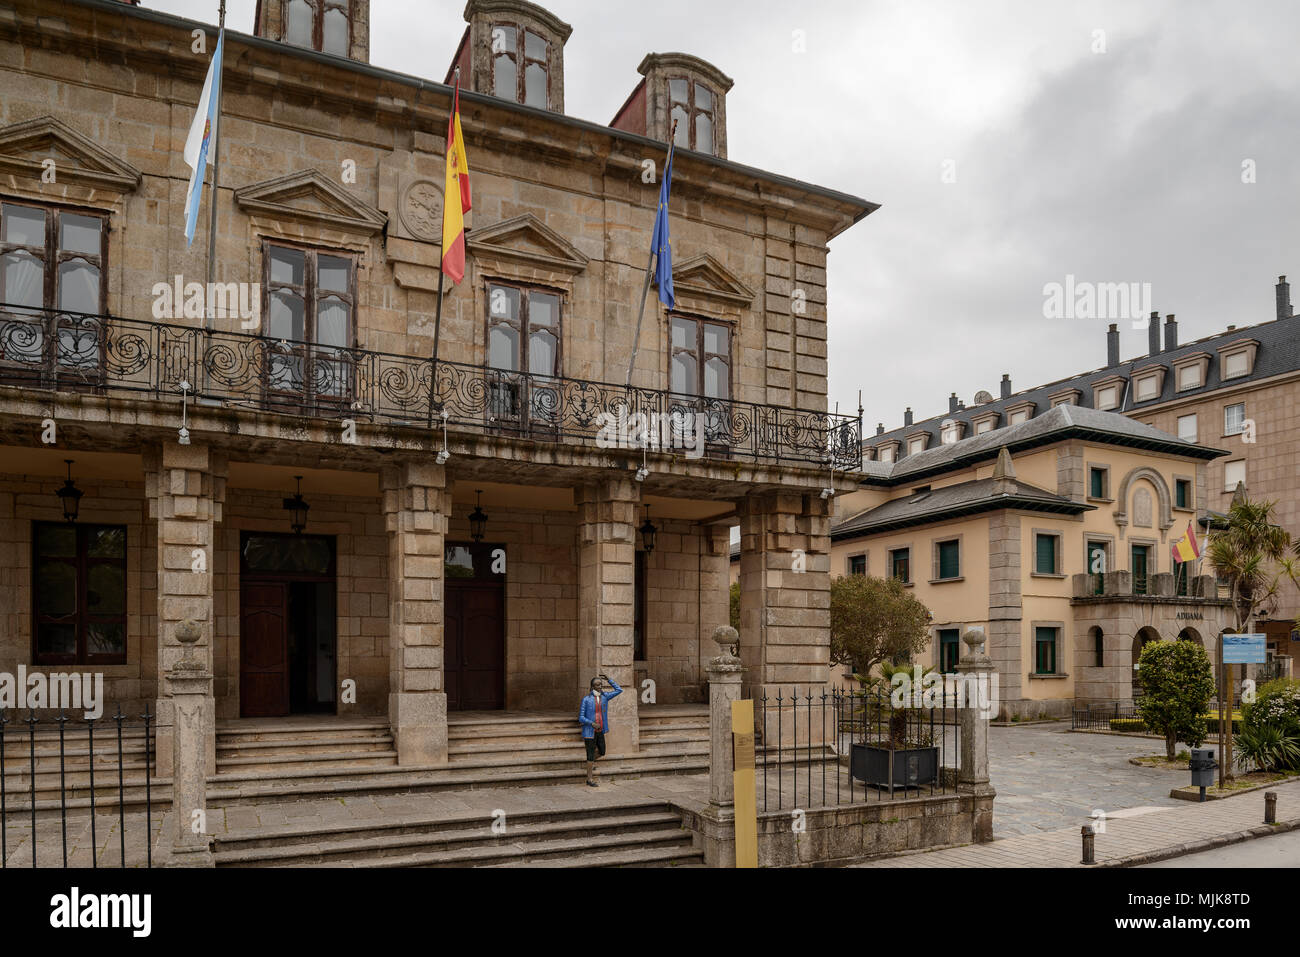 A Casa do Concello, town hall, the old Customs building in Ribadeo, Lugo province, in the region of Galicia, northern Spain, Europe - Stock Image